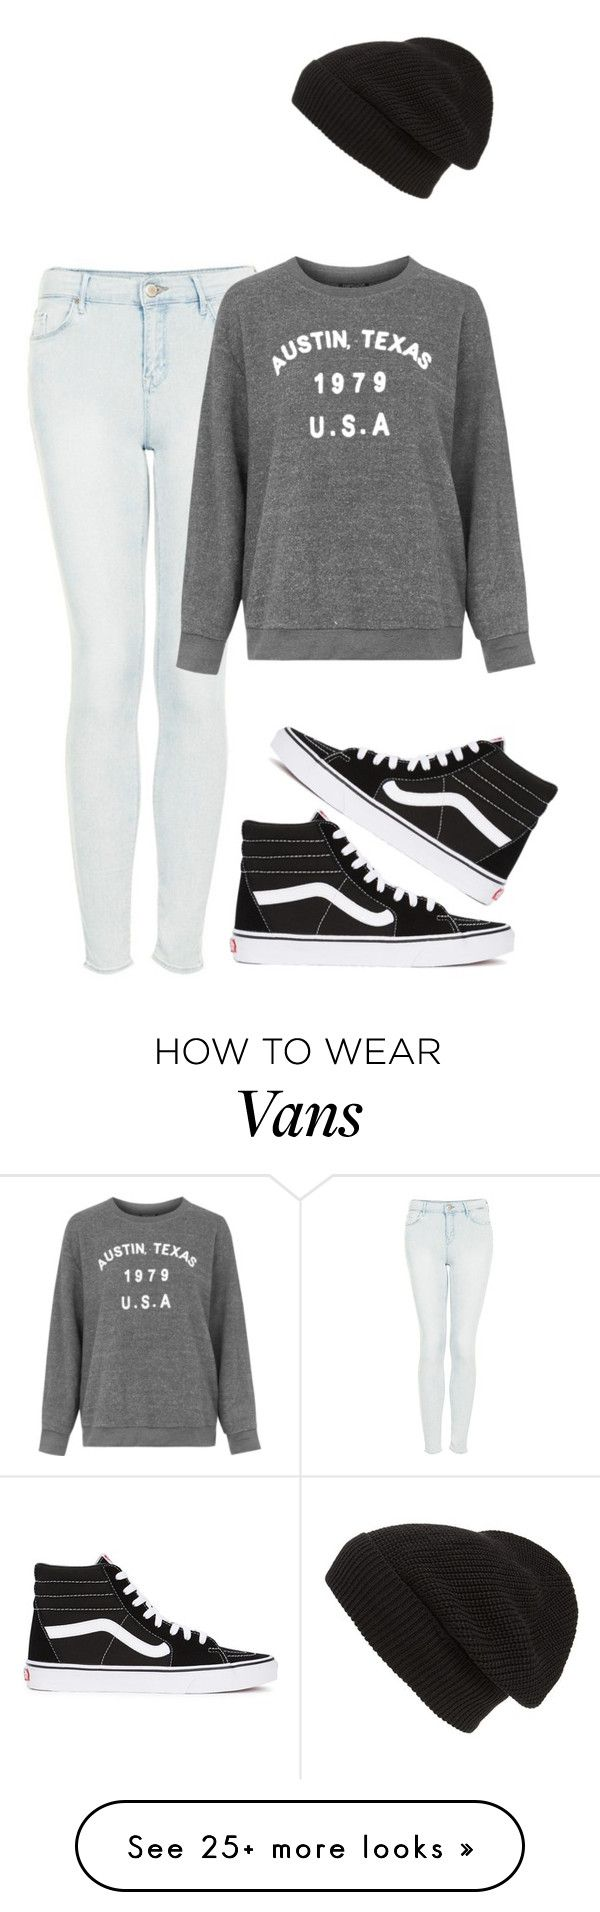 """Untitled #1498"" by musicfasionbooks on Polyvore featuring Topshop, Vans and Phase 3"